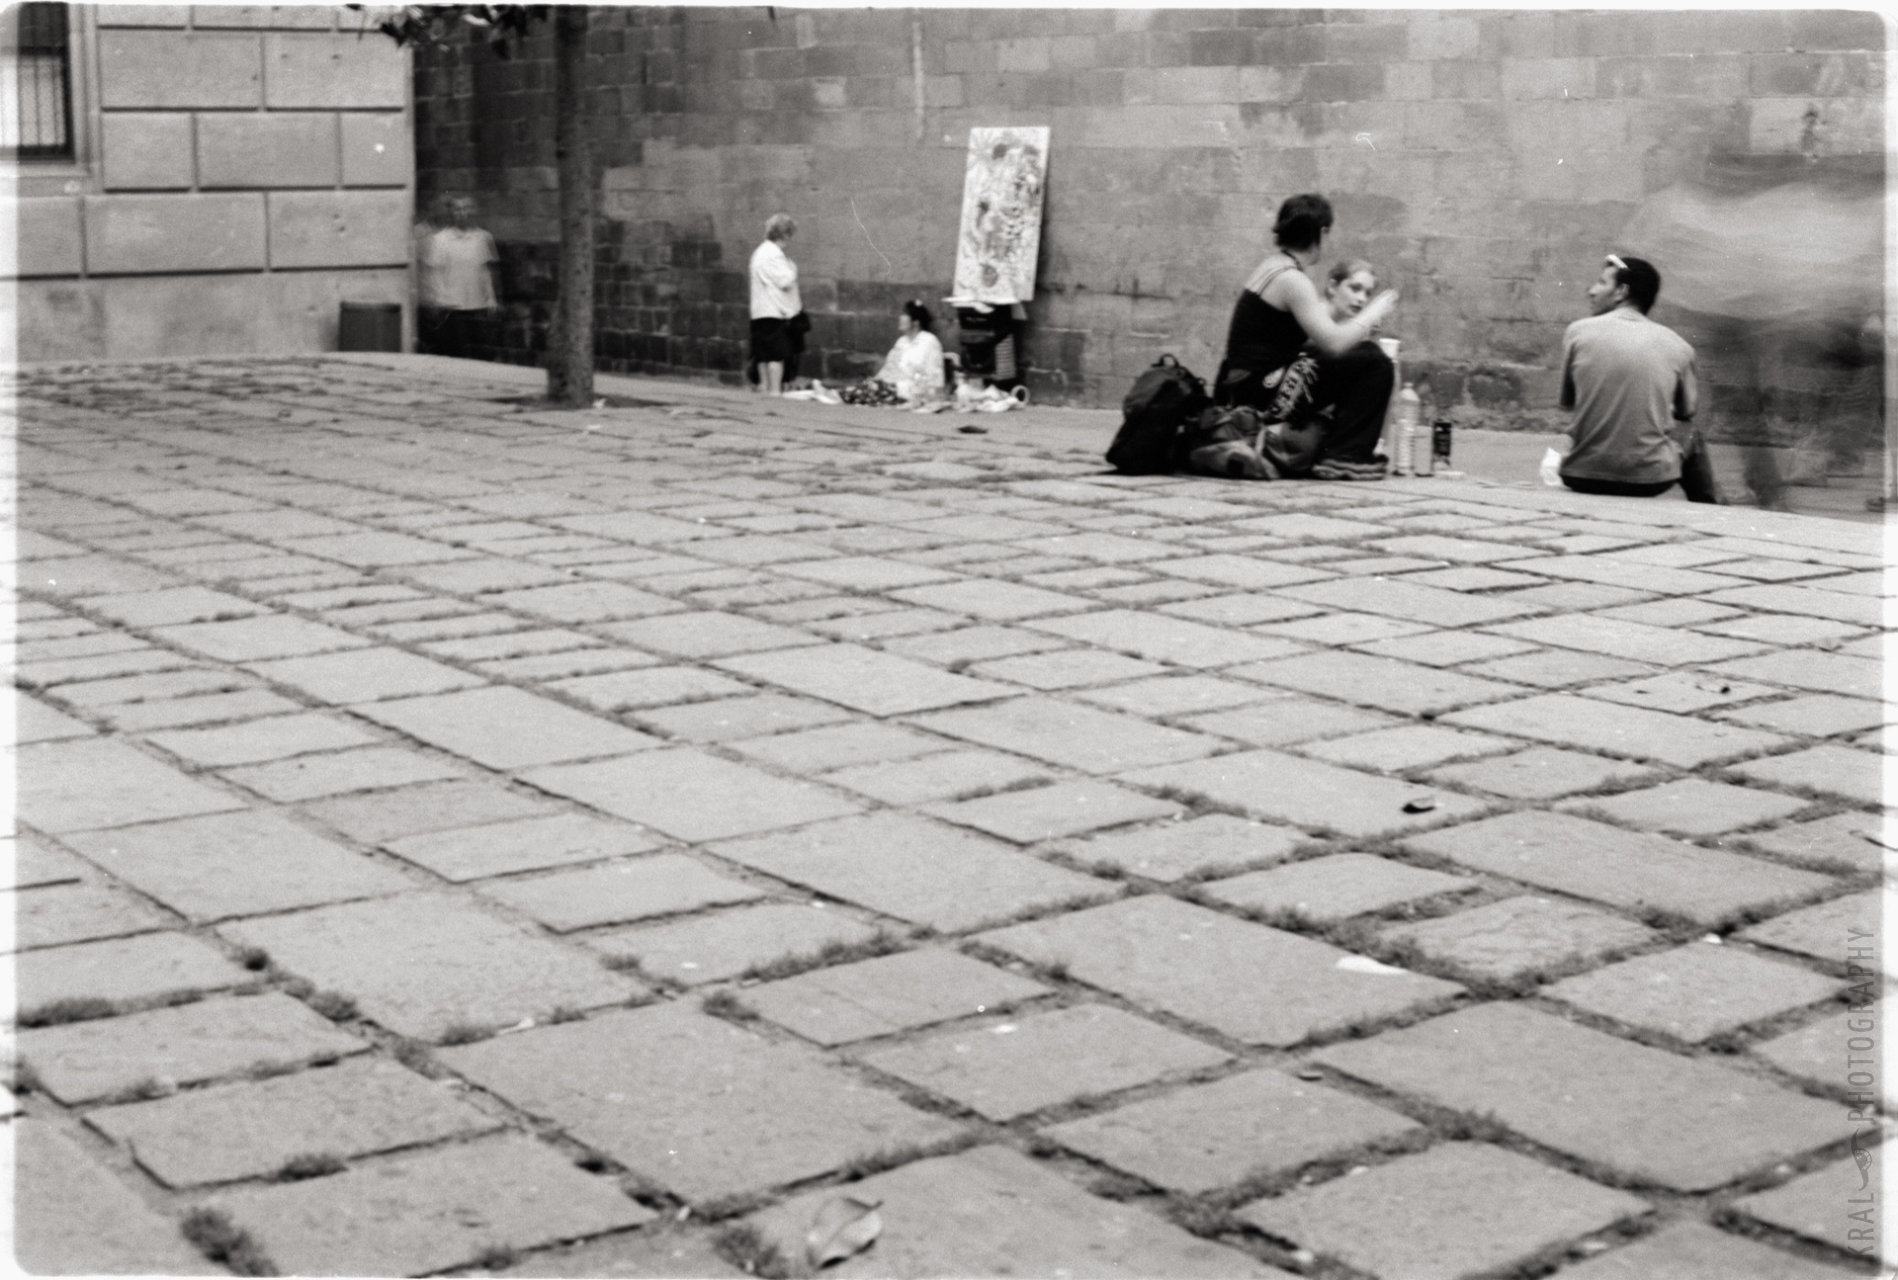 © Holger Kral • Photography - bcn02_01_05 - 2002, barcelona, blackwhite, journey, street - photo #1